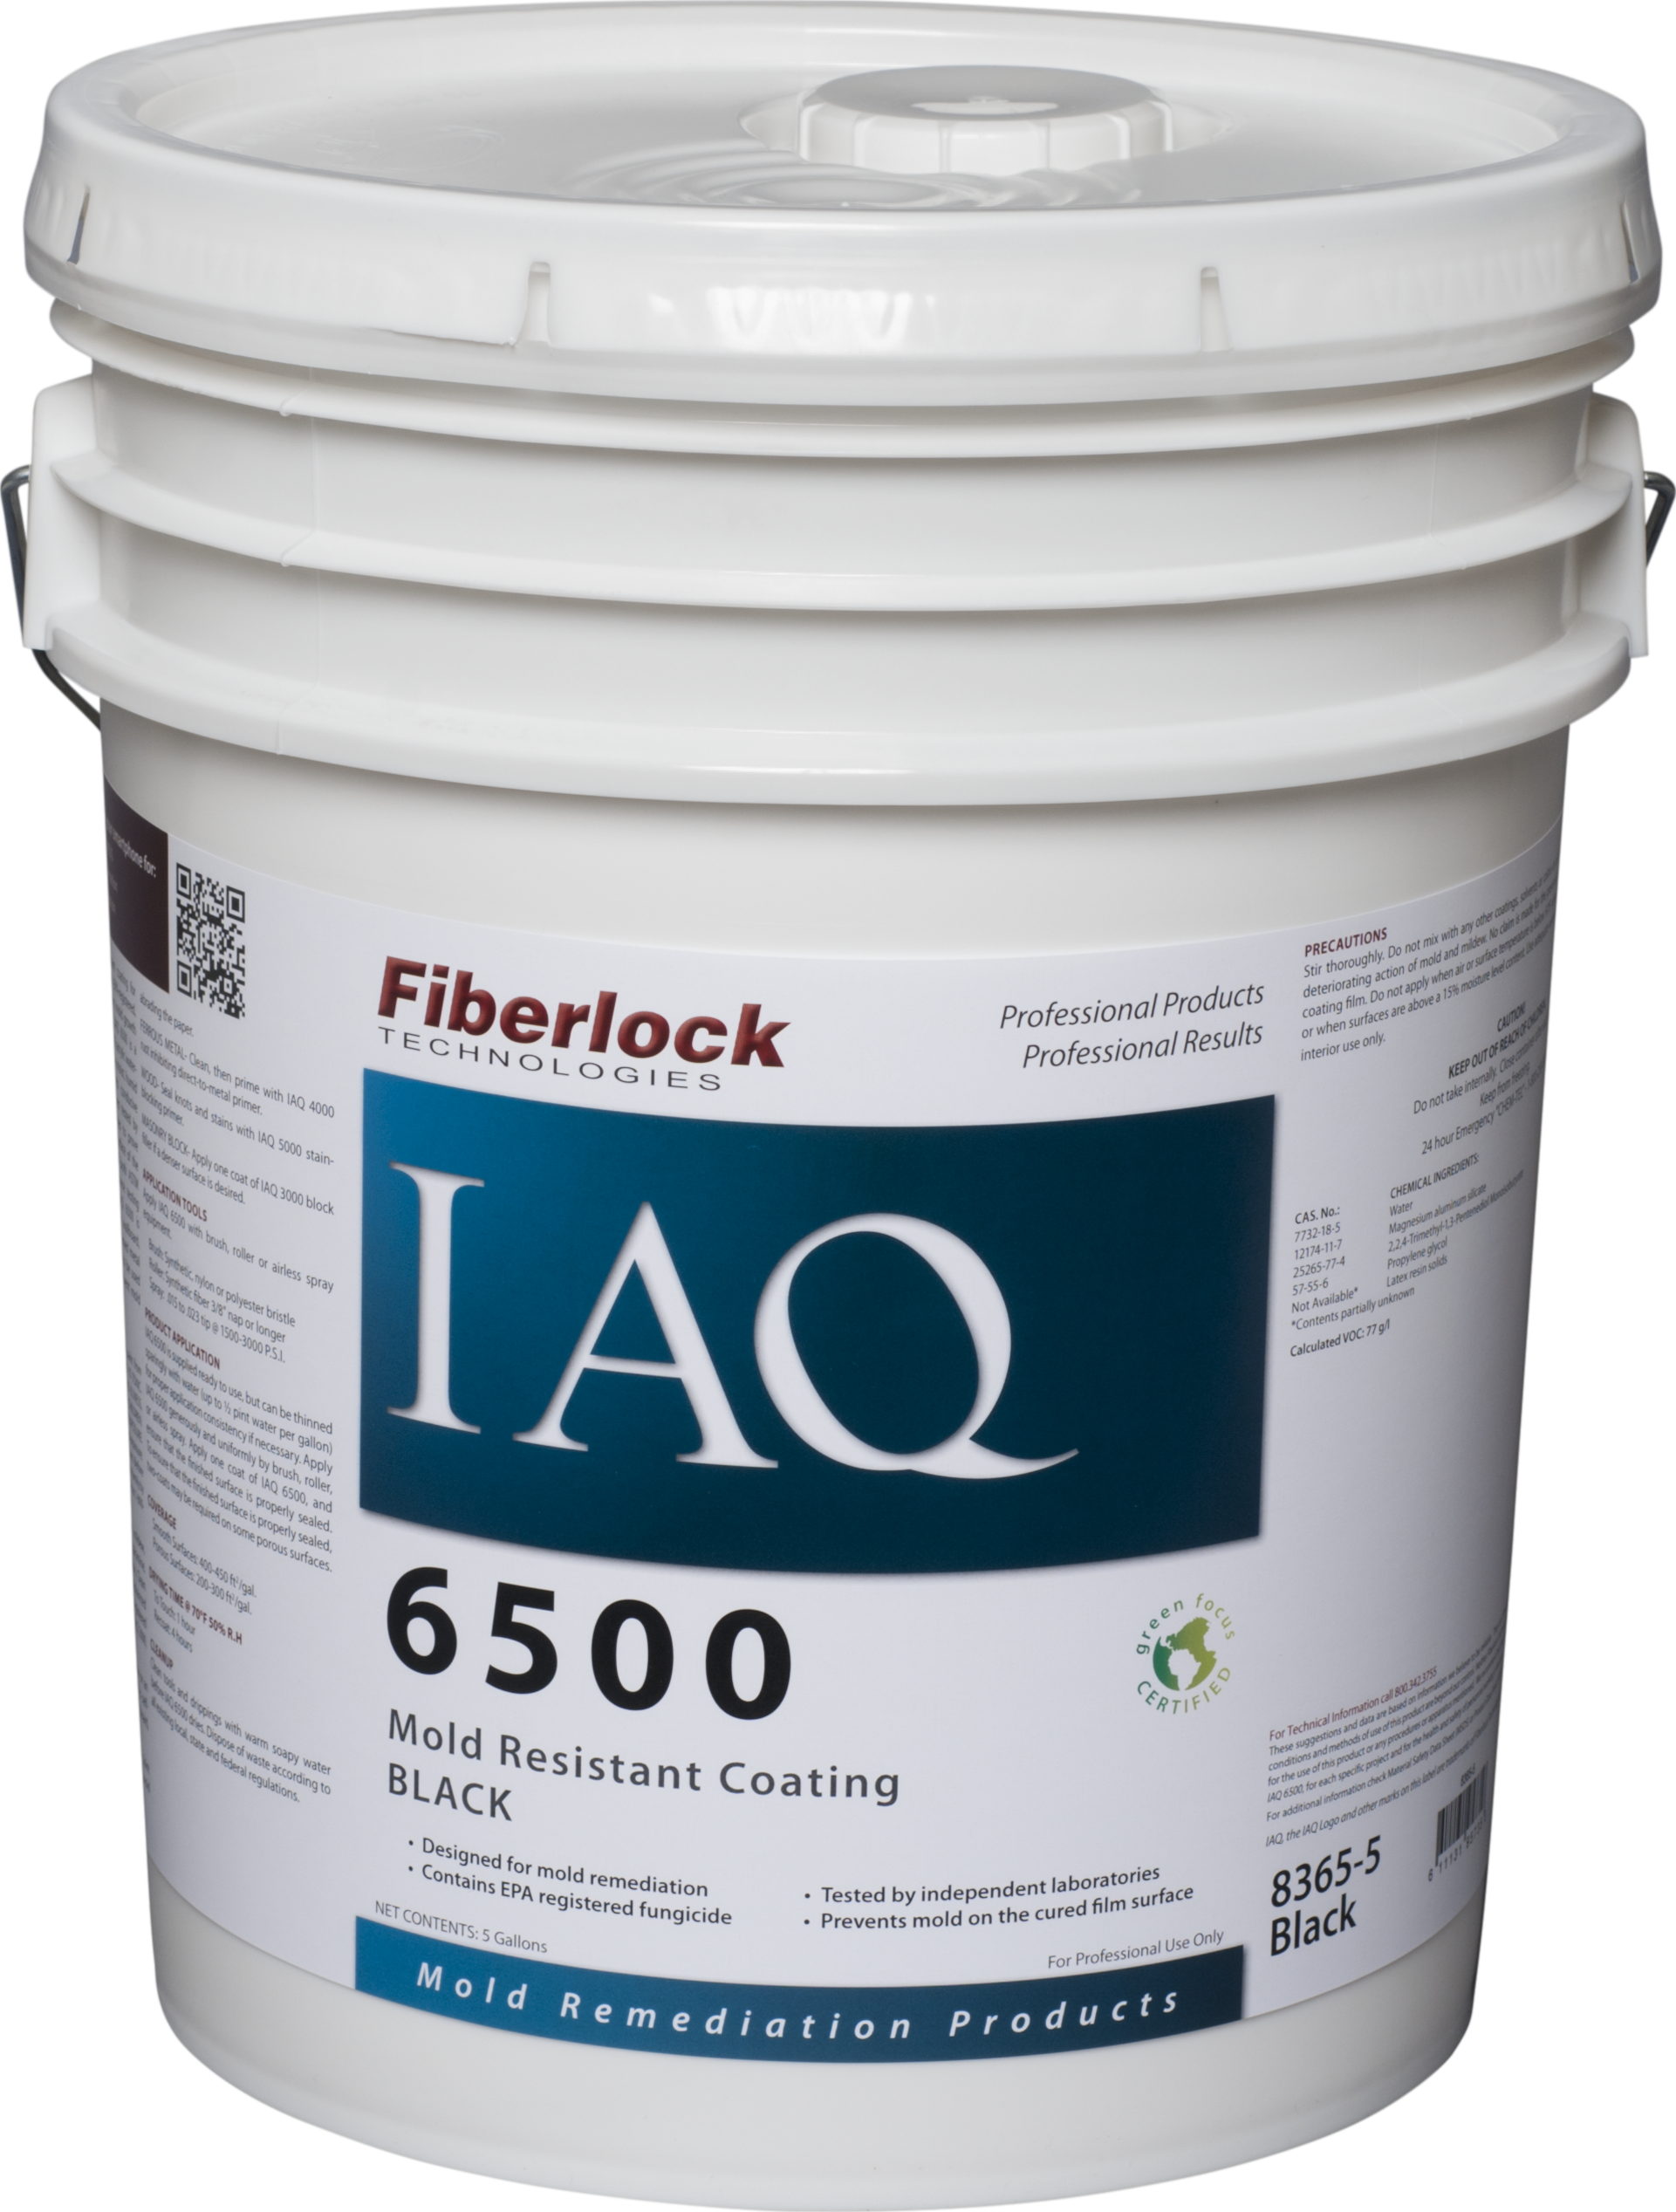 Fiberlock IAQ 6500 Coating/BLACK FINISH (5 gal.)